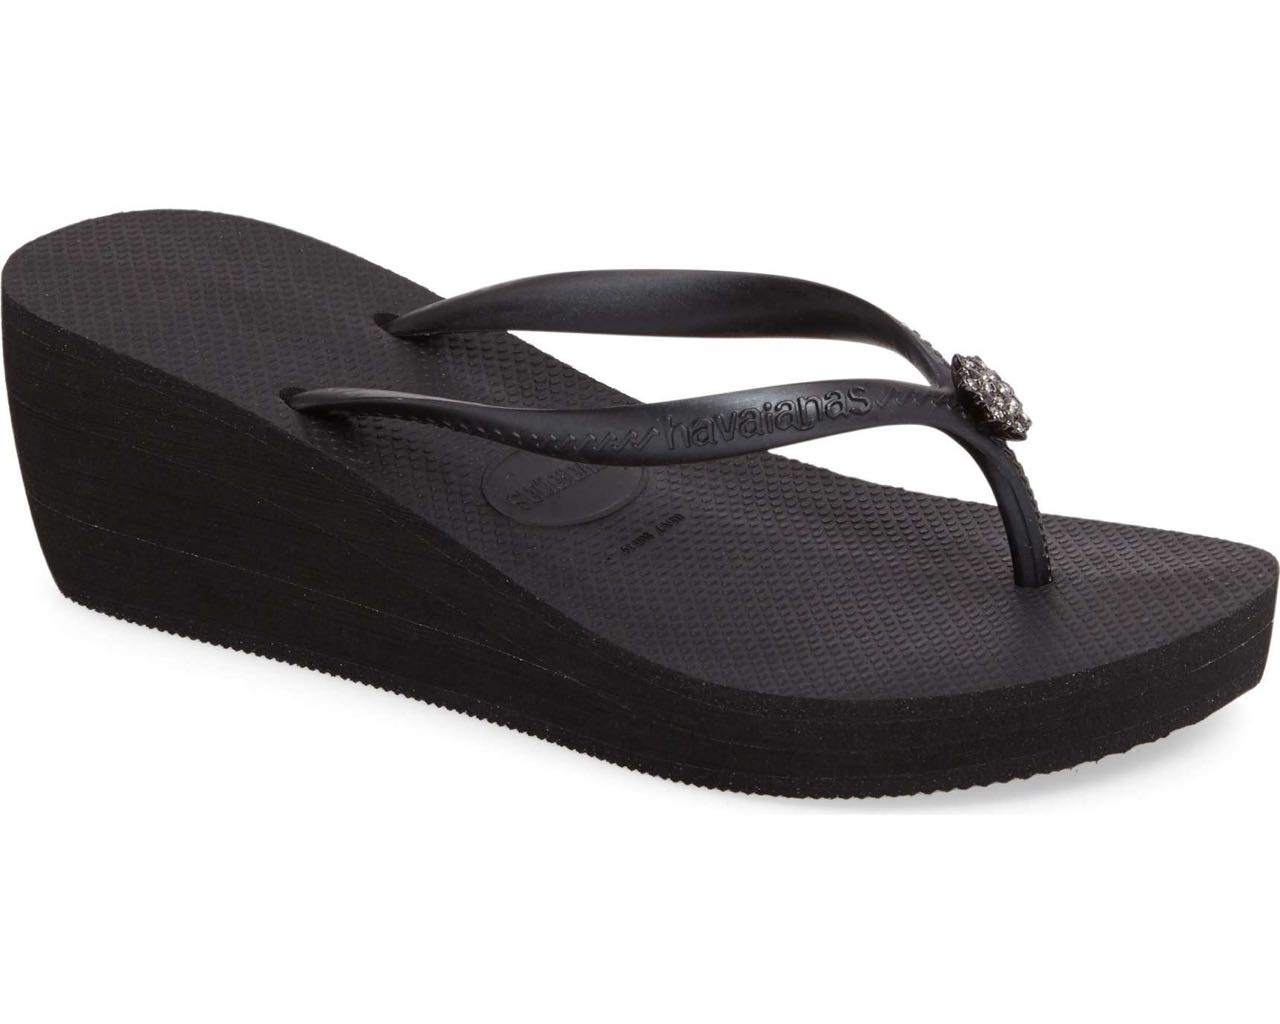 4b0df3857dfaf Havaianas Wedge Flip Flops High Fashion POEM Black